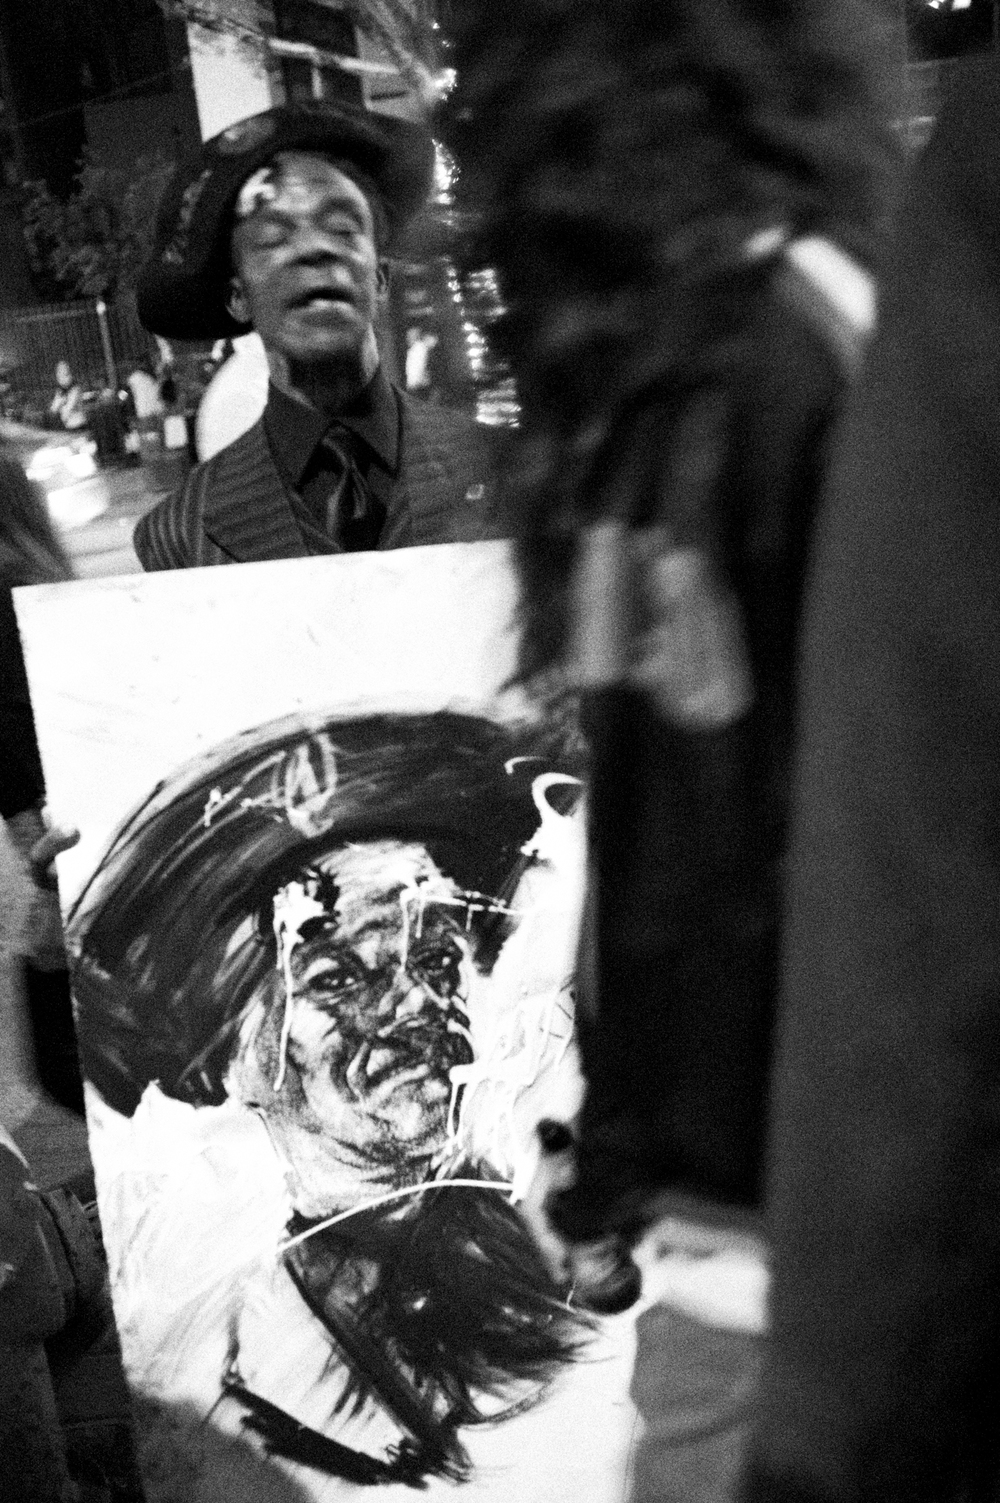 Ricky the Pirate walks around with a portrait of him by Robert Vargas during Artwork in 2011 in DTLA